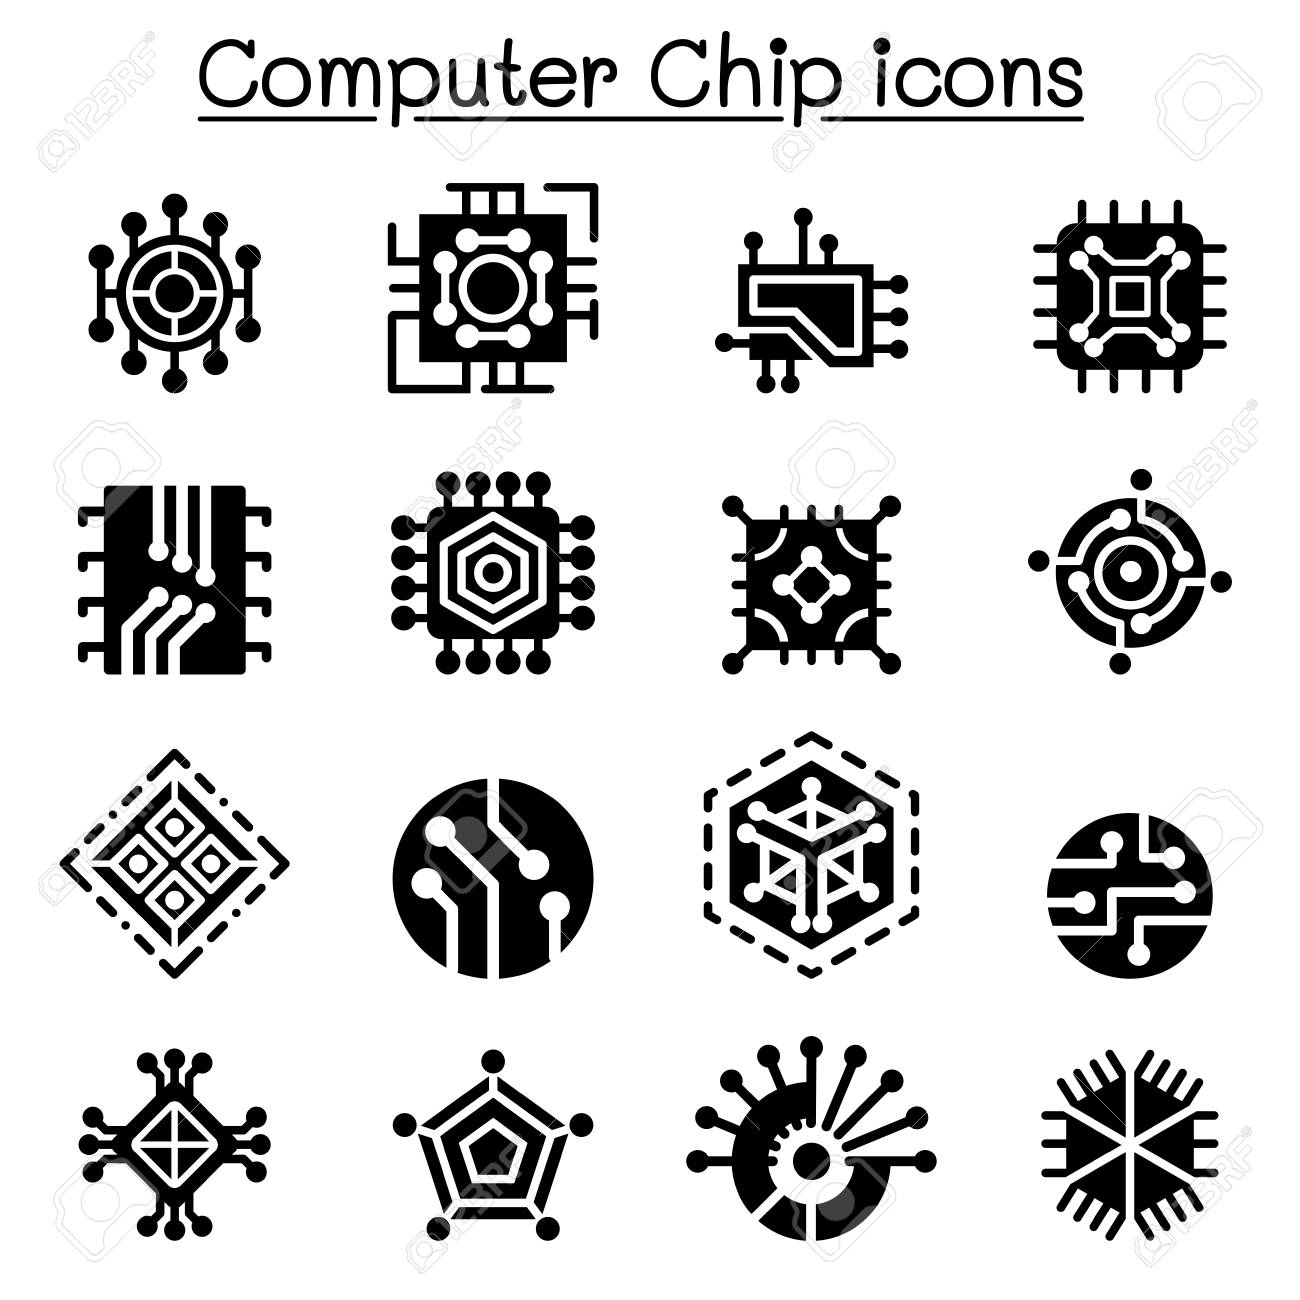 Computer Chips And Electronic Circuit Icons Royalty Free Cliparts